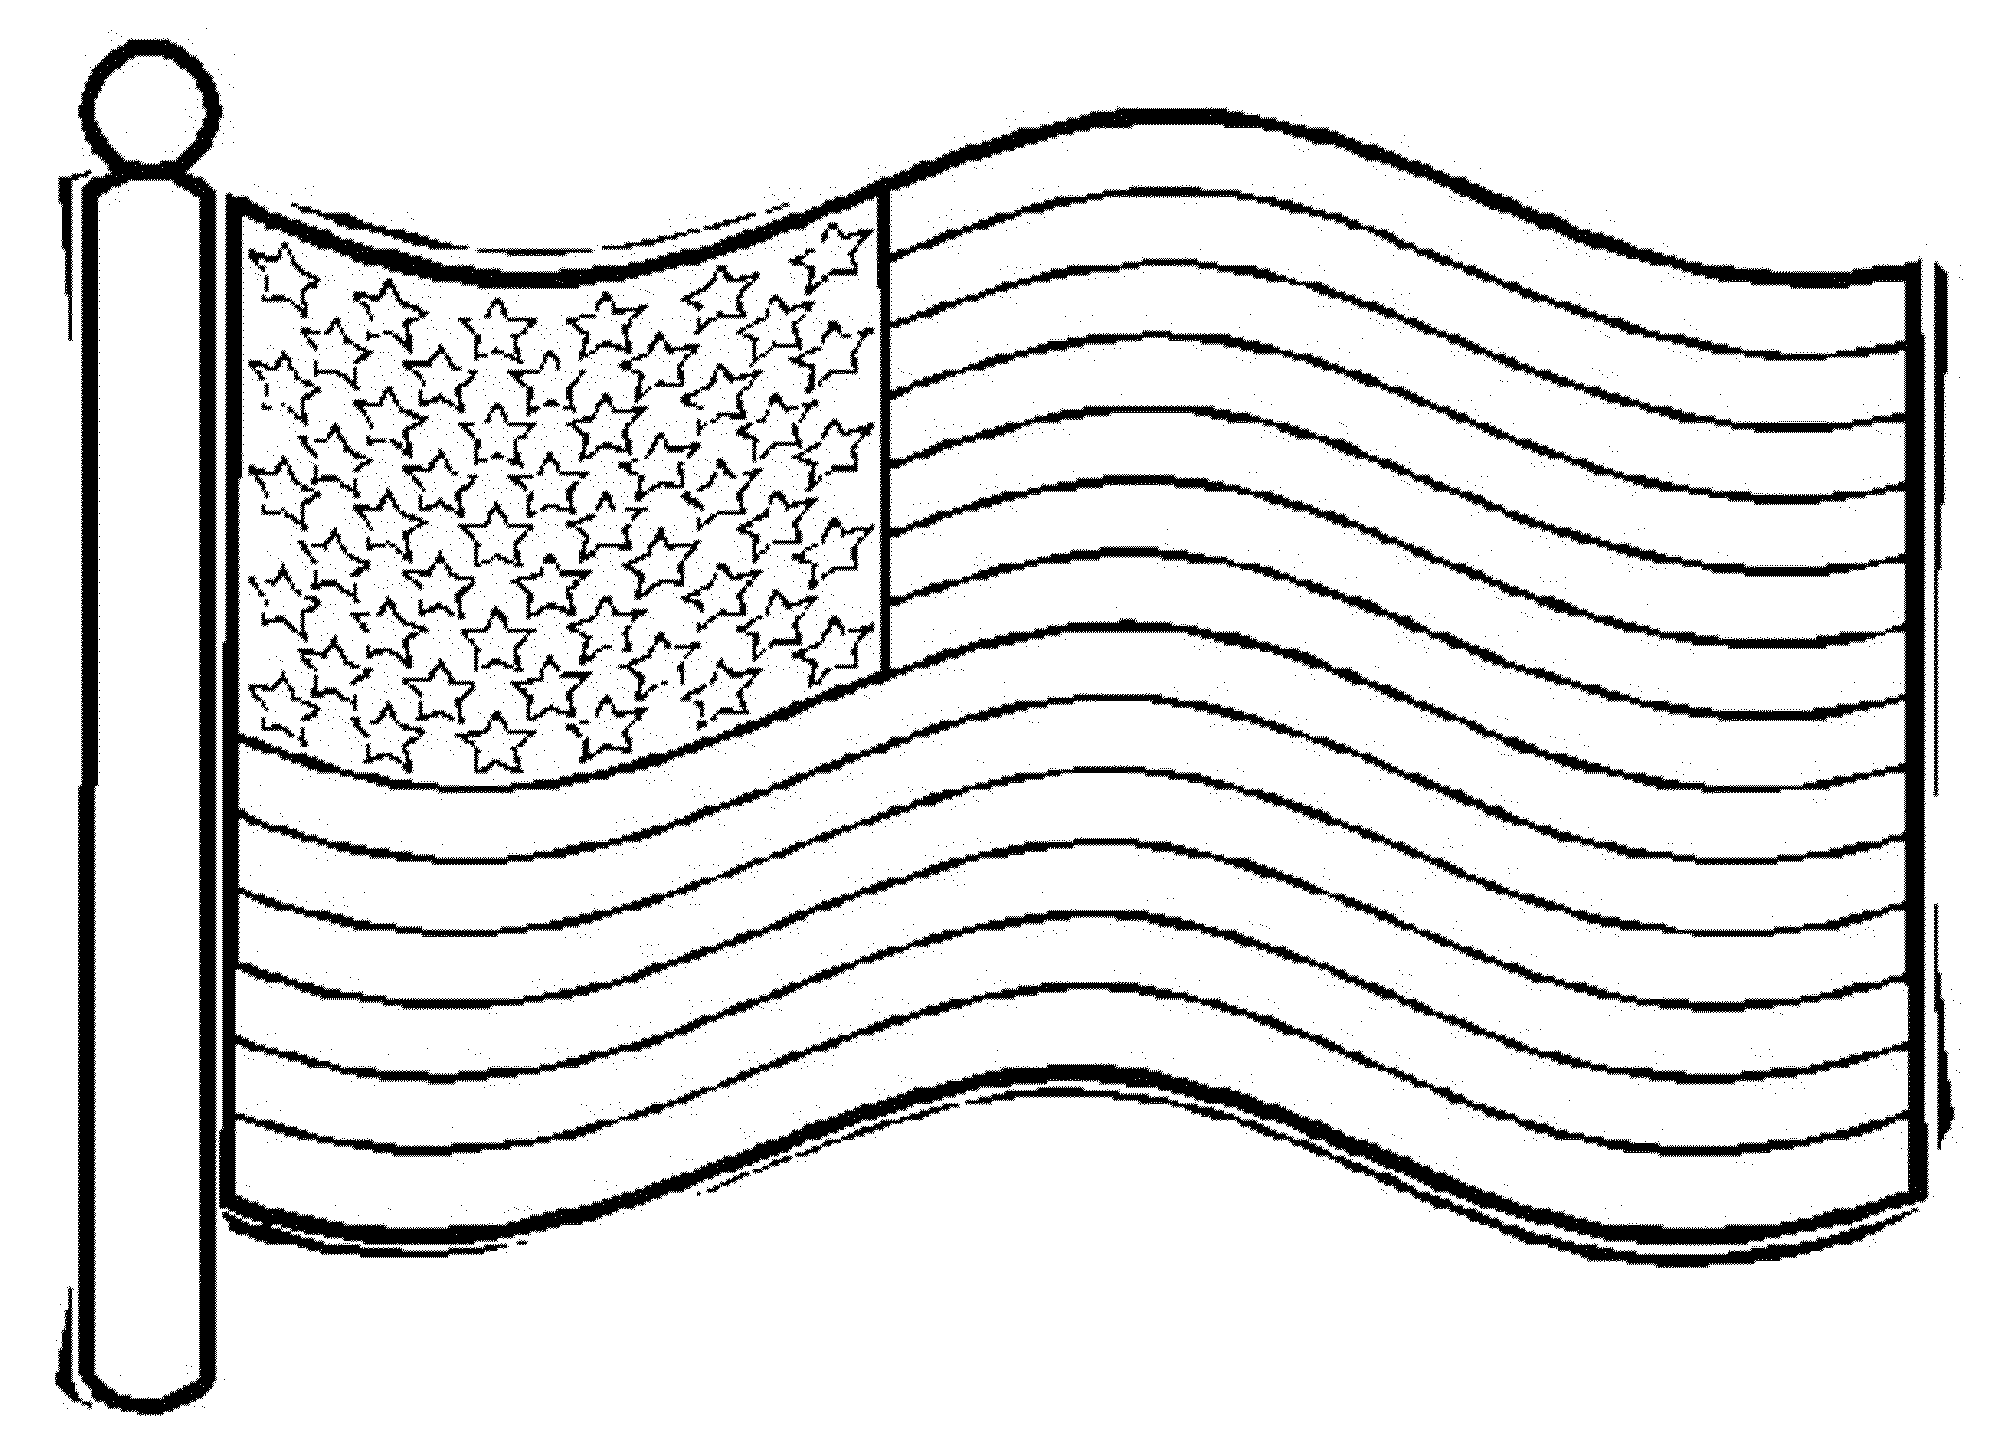 small american flag coloring page small american flag coloring page flag coloring pages small american coloring page flag